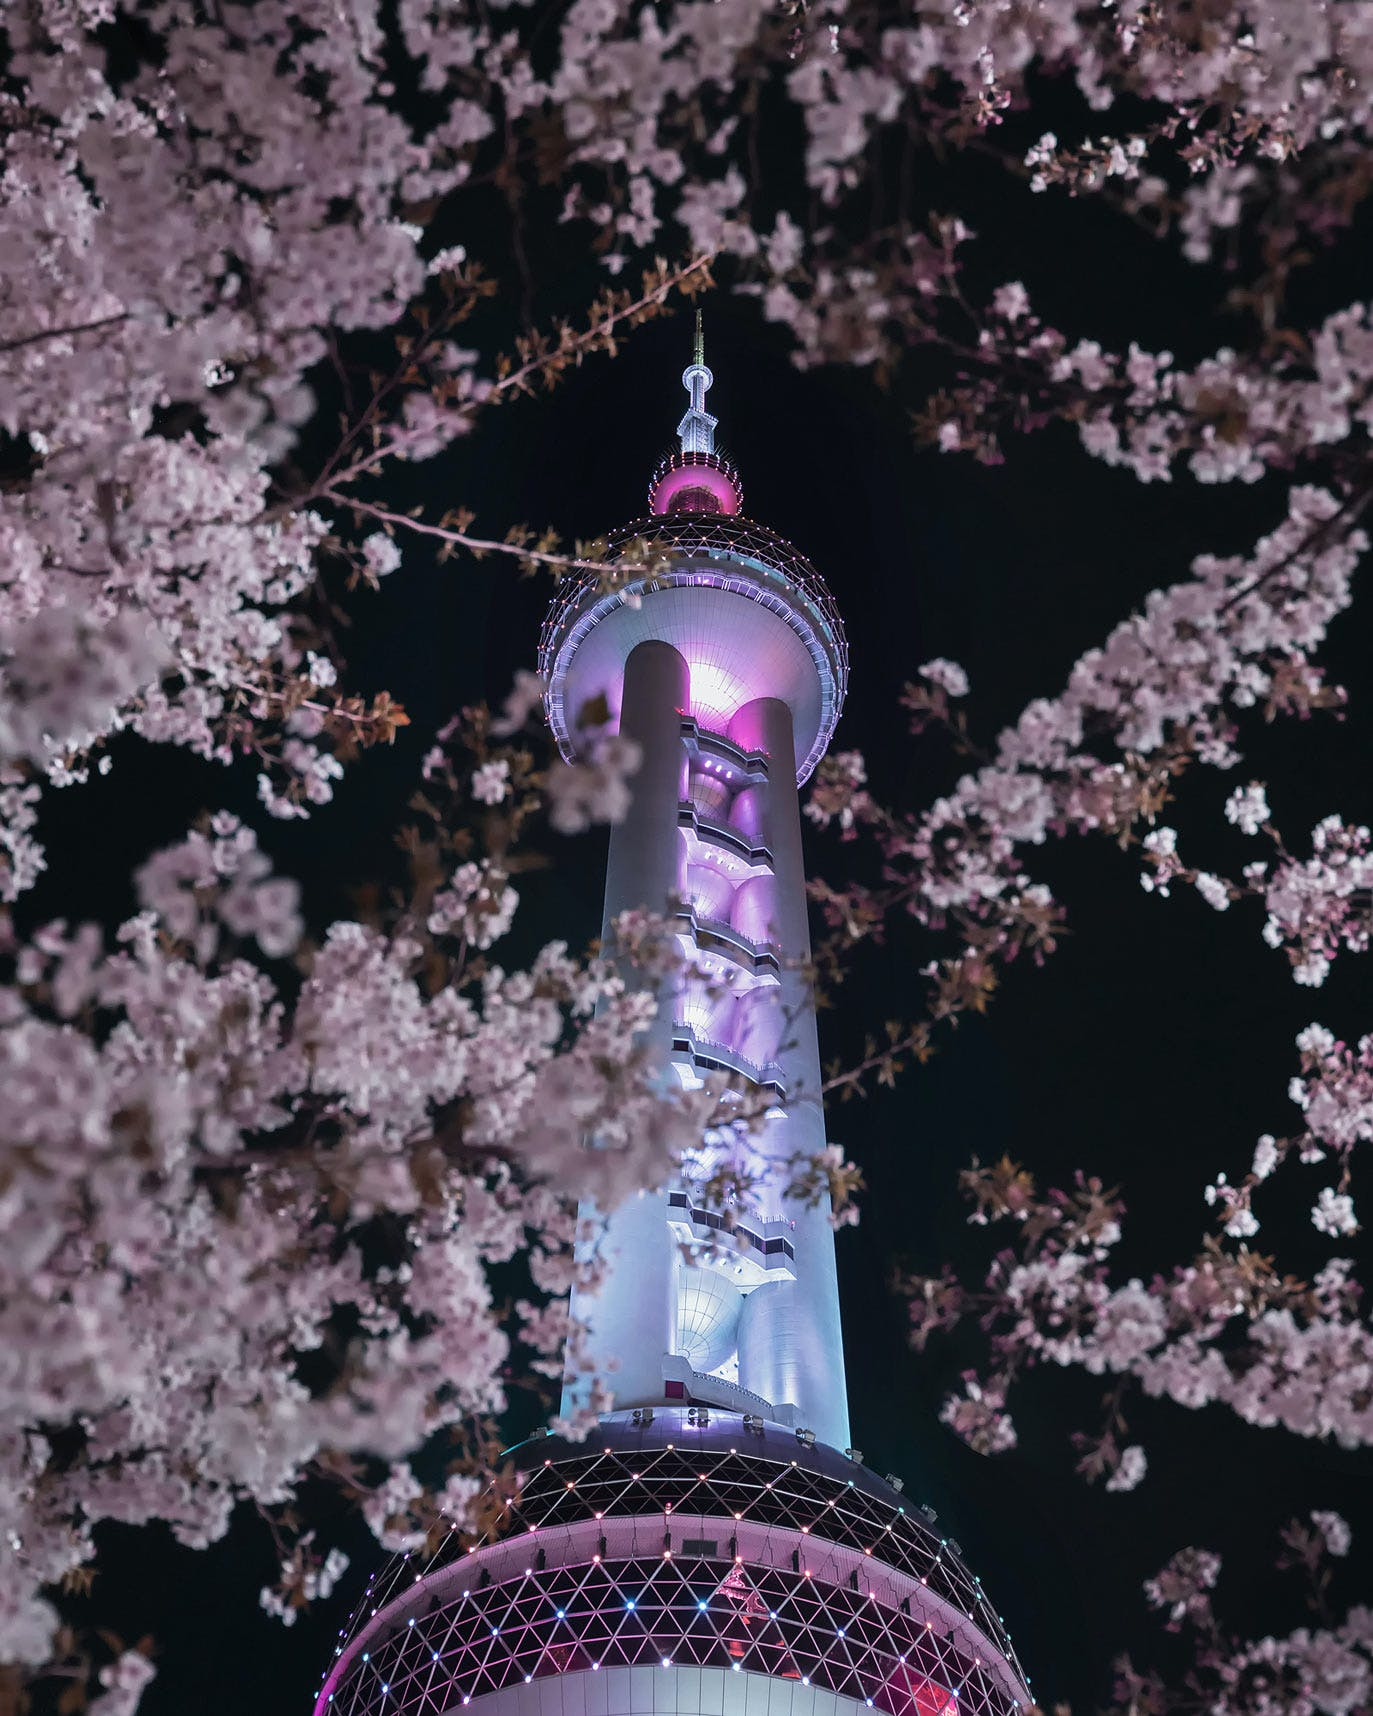 The Oriental Pearl Radio & TV Tower Framed by Cherry Blossoms